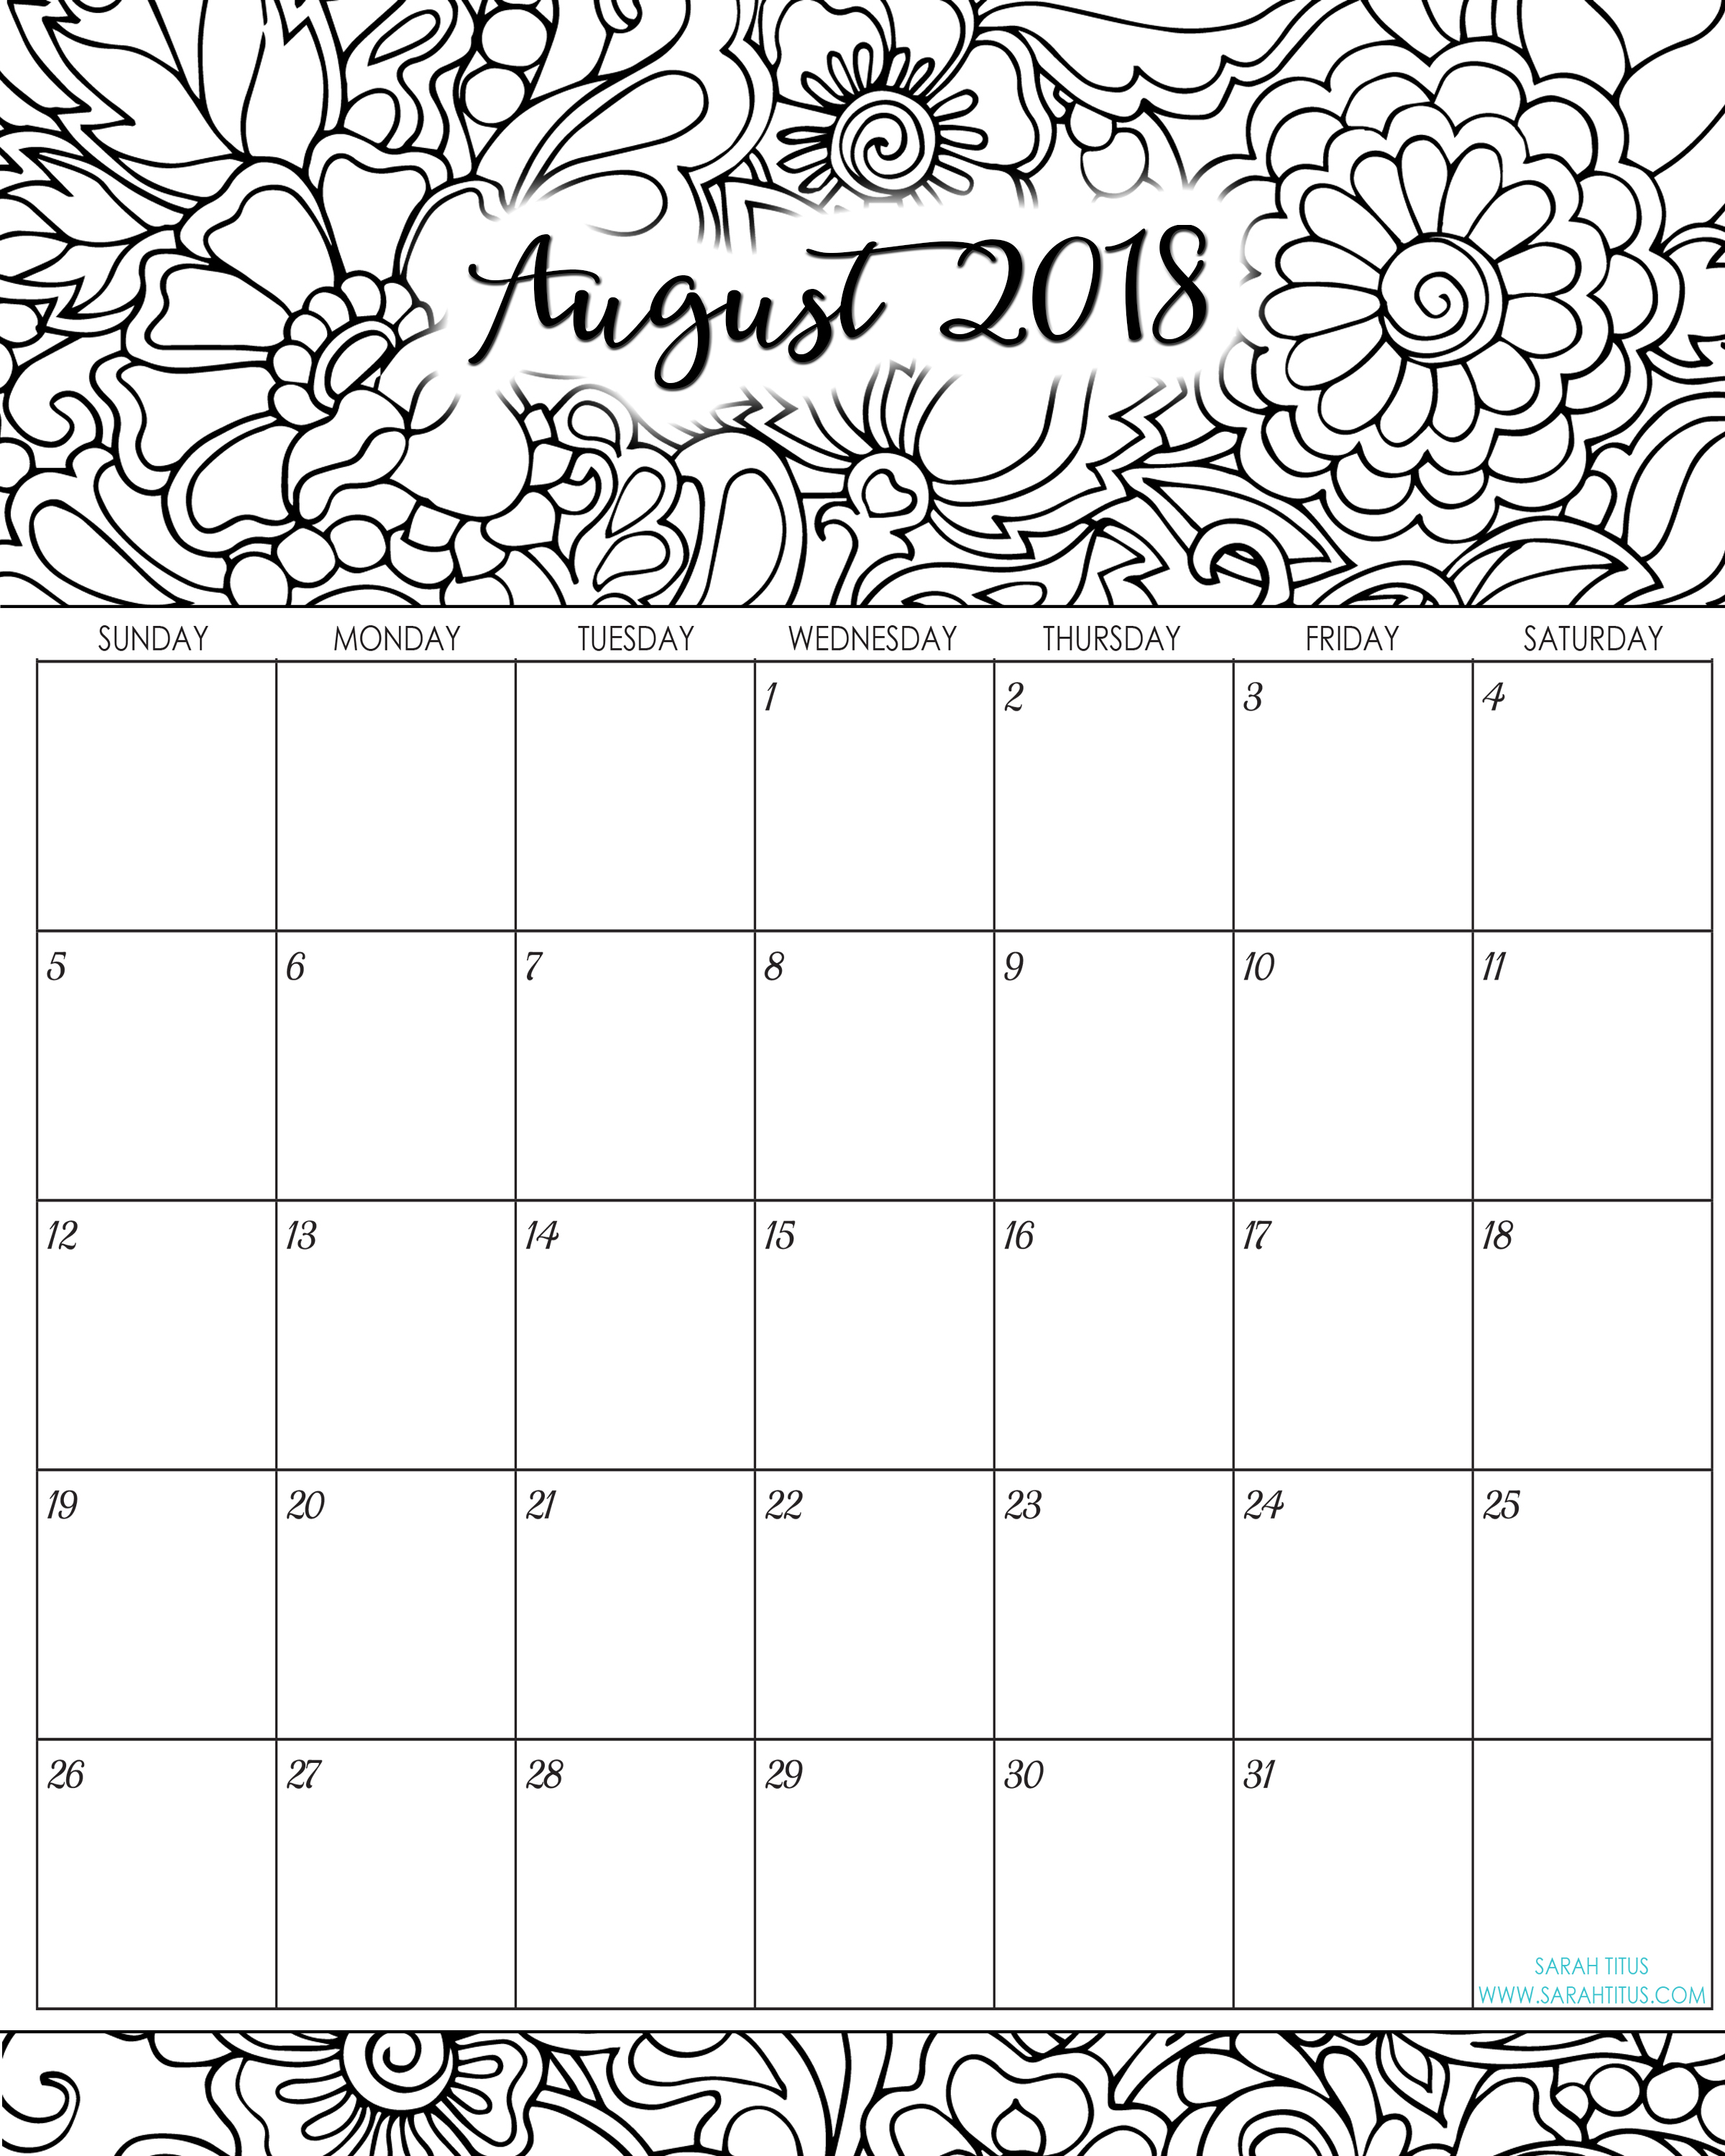 Unique August 2018 Cute Calendar